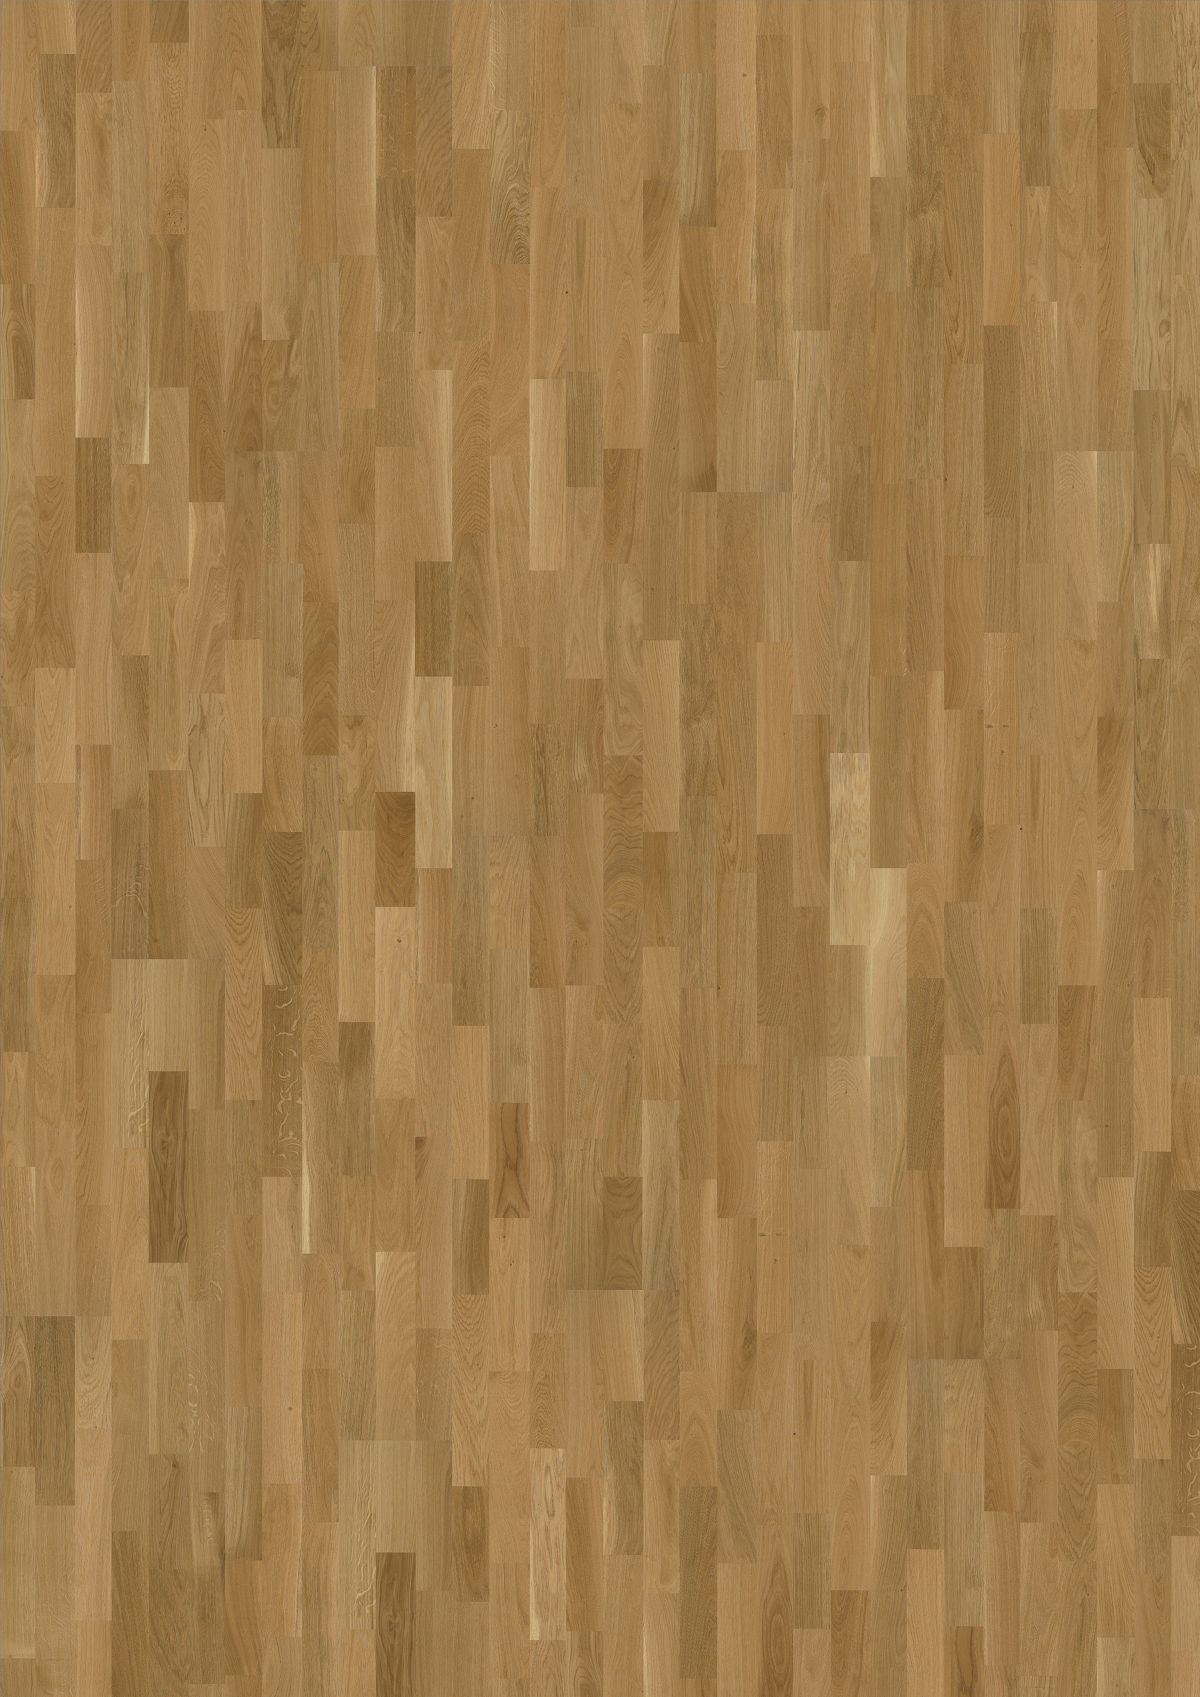 kahrs oak lecco engineered wood flooring. Black Bedroom Furniture Sets. Home Design Ideas